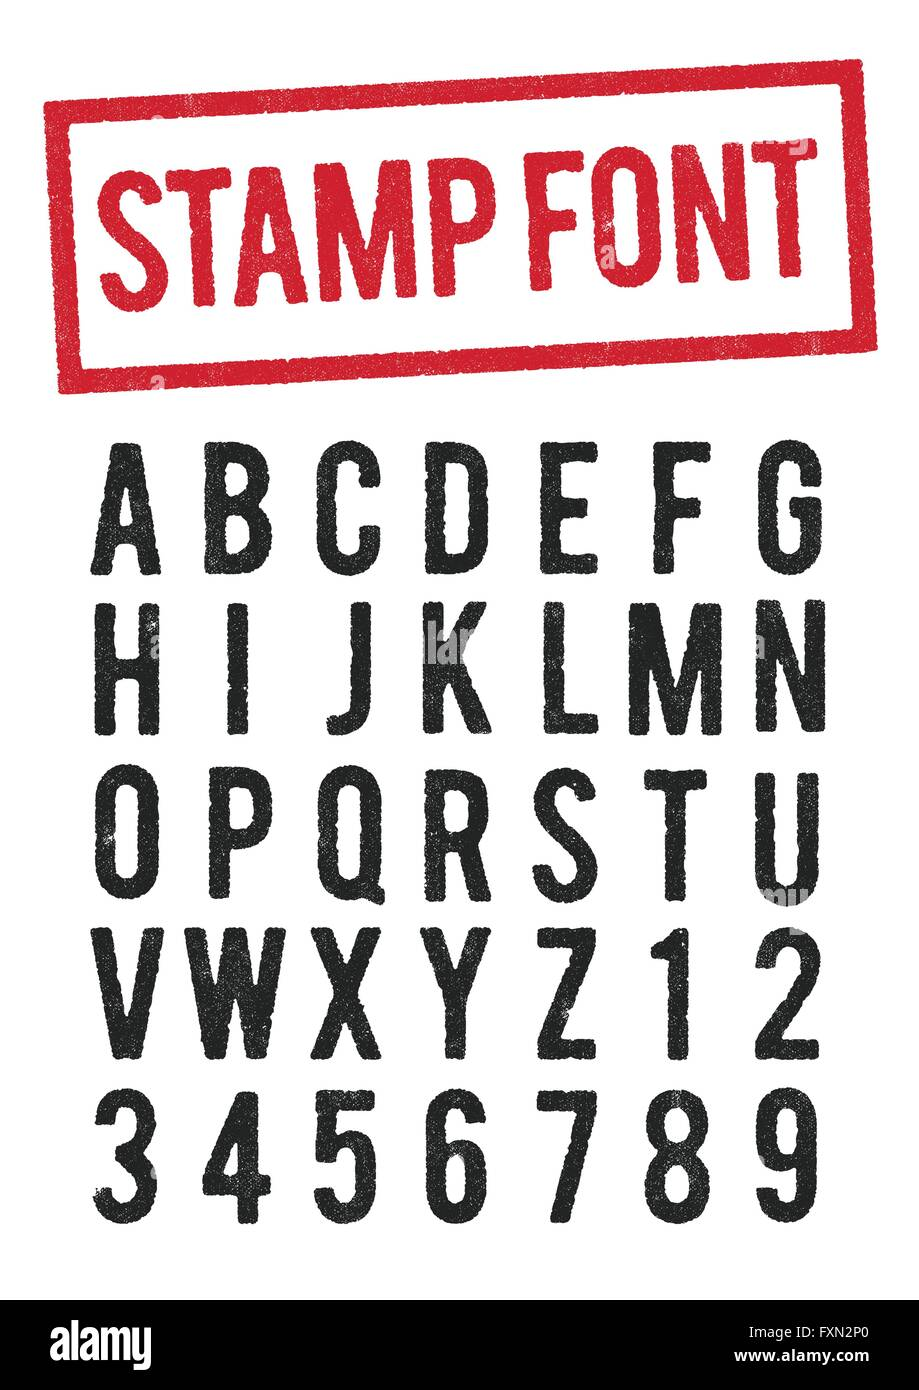 Stamp Font Stockfotos Bilder